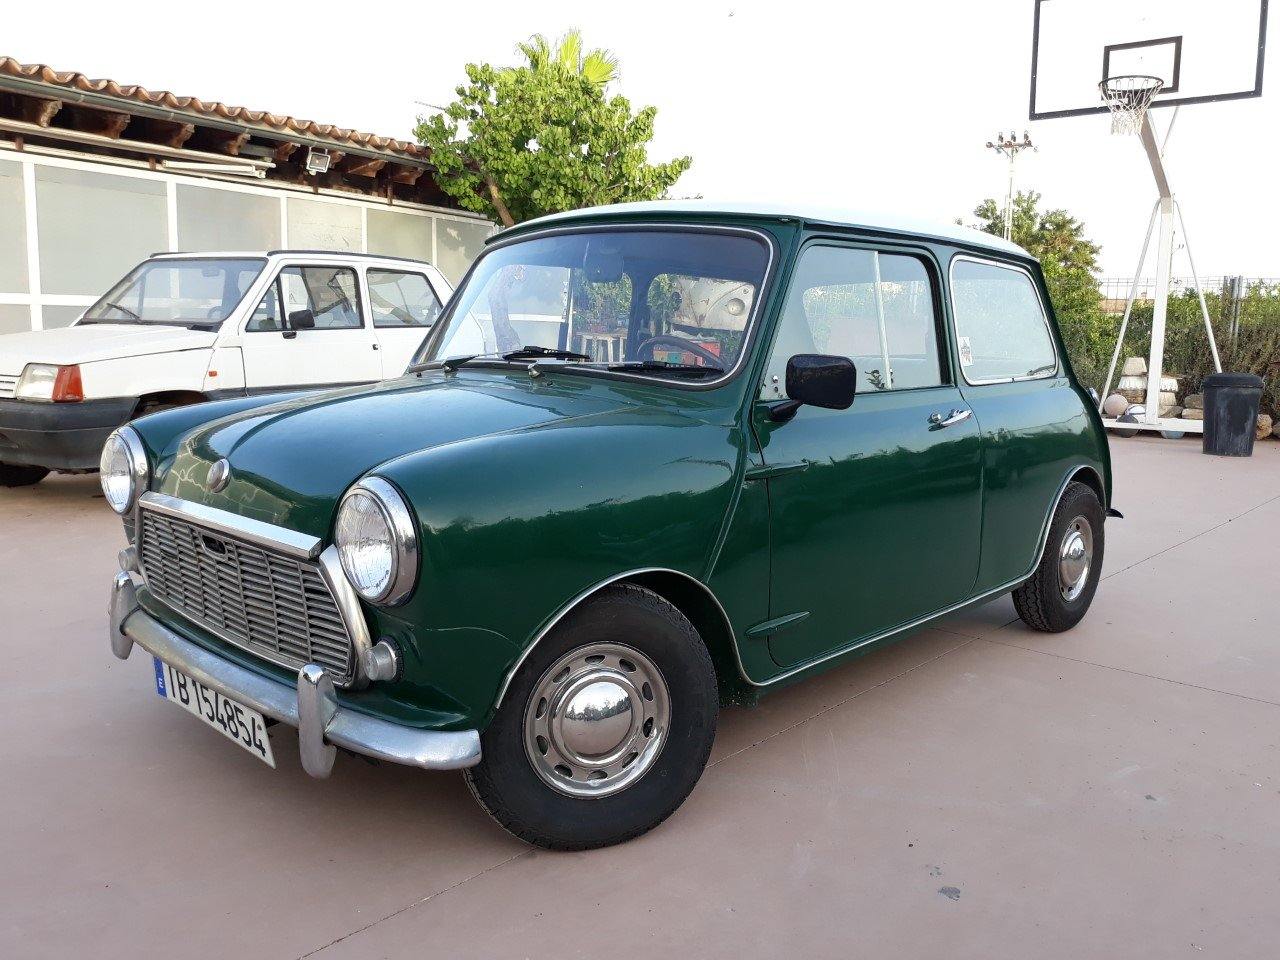 LHD-Authi Mini 850 year 1970